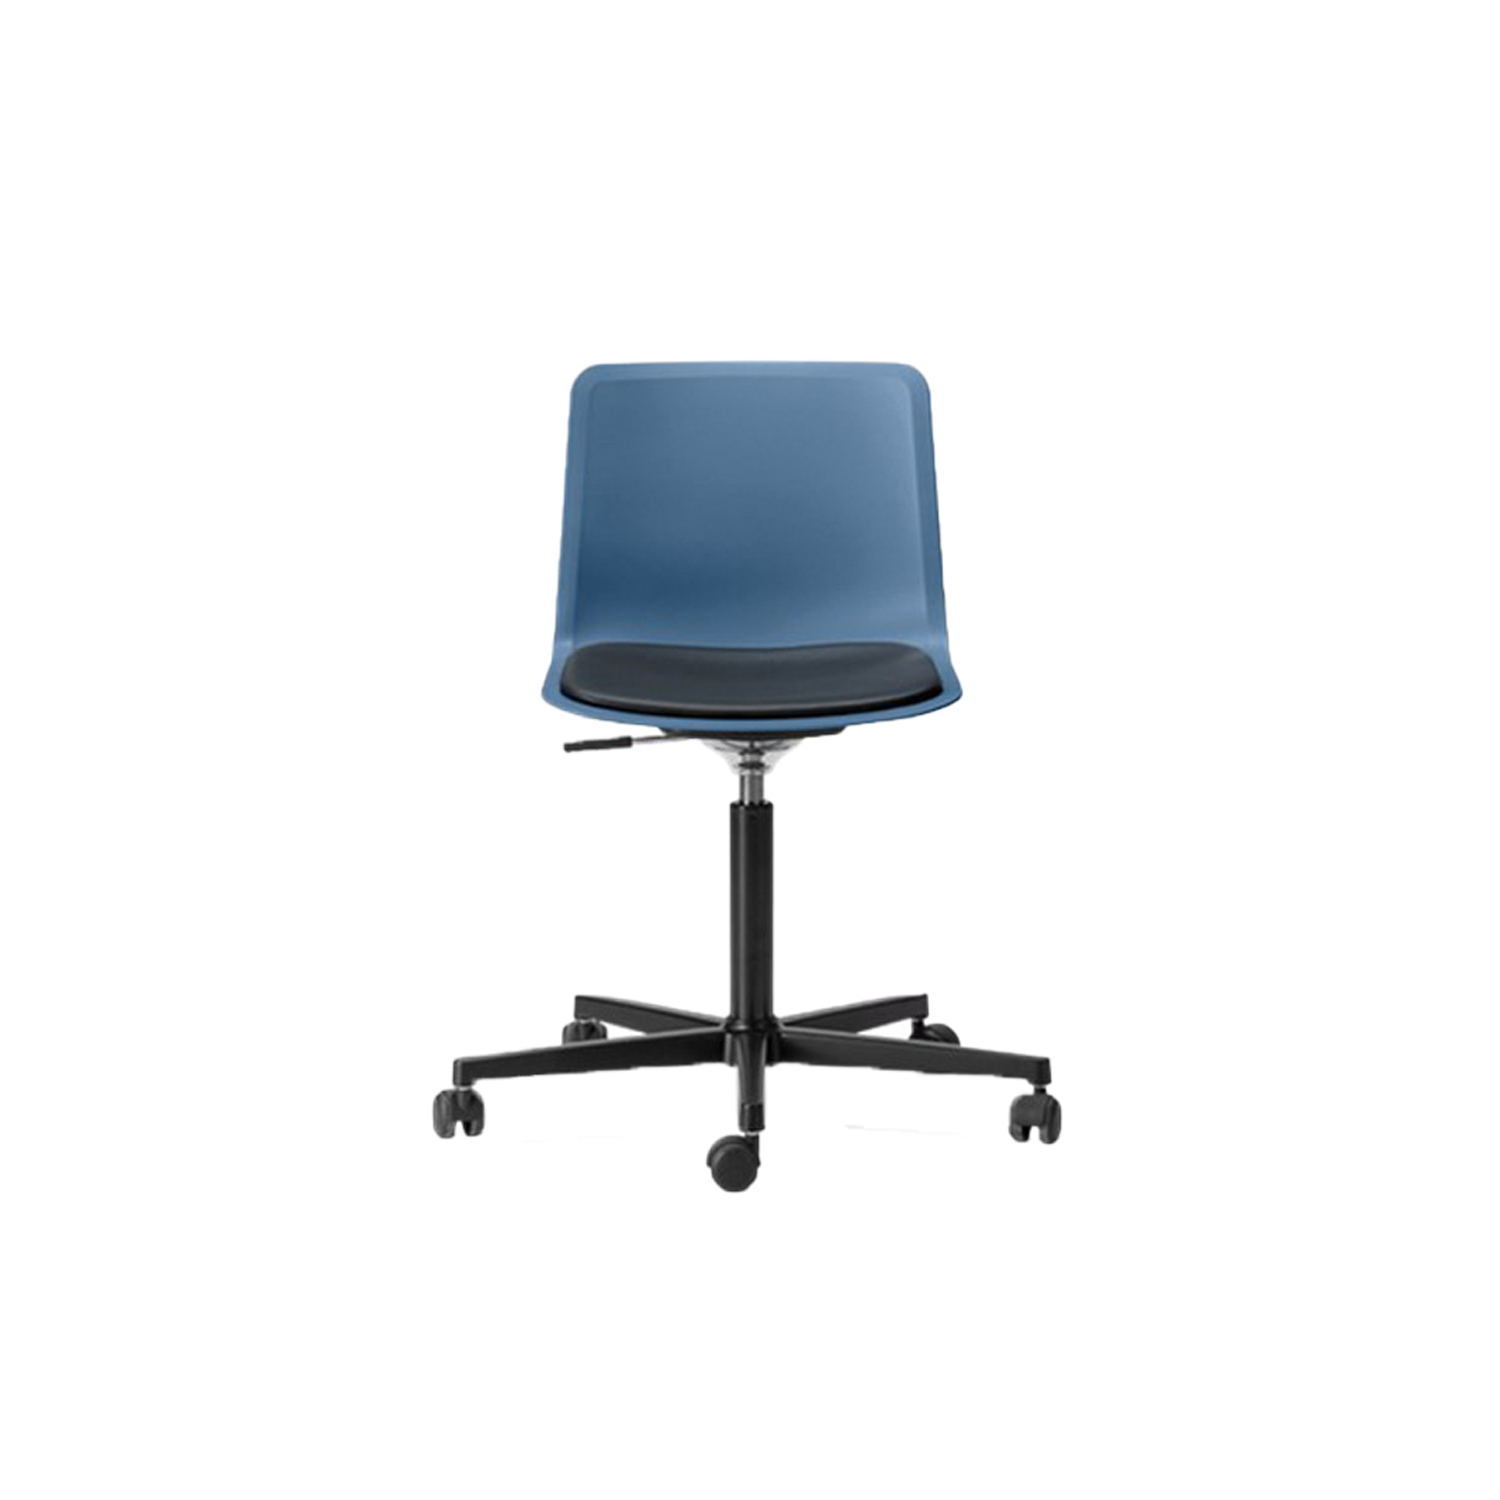 Pato Office 5 Point Swivel Base Chair Seat Upholstered - Pato Office Chair is fitted with a 5-point star swivel base on casters. The frame has a swivel feature with height adjustable gaslift and a tilt function for comfortable task seating. The chair can be tuned from basic to exclusive with optional upholstery.